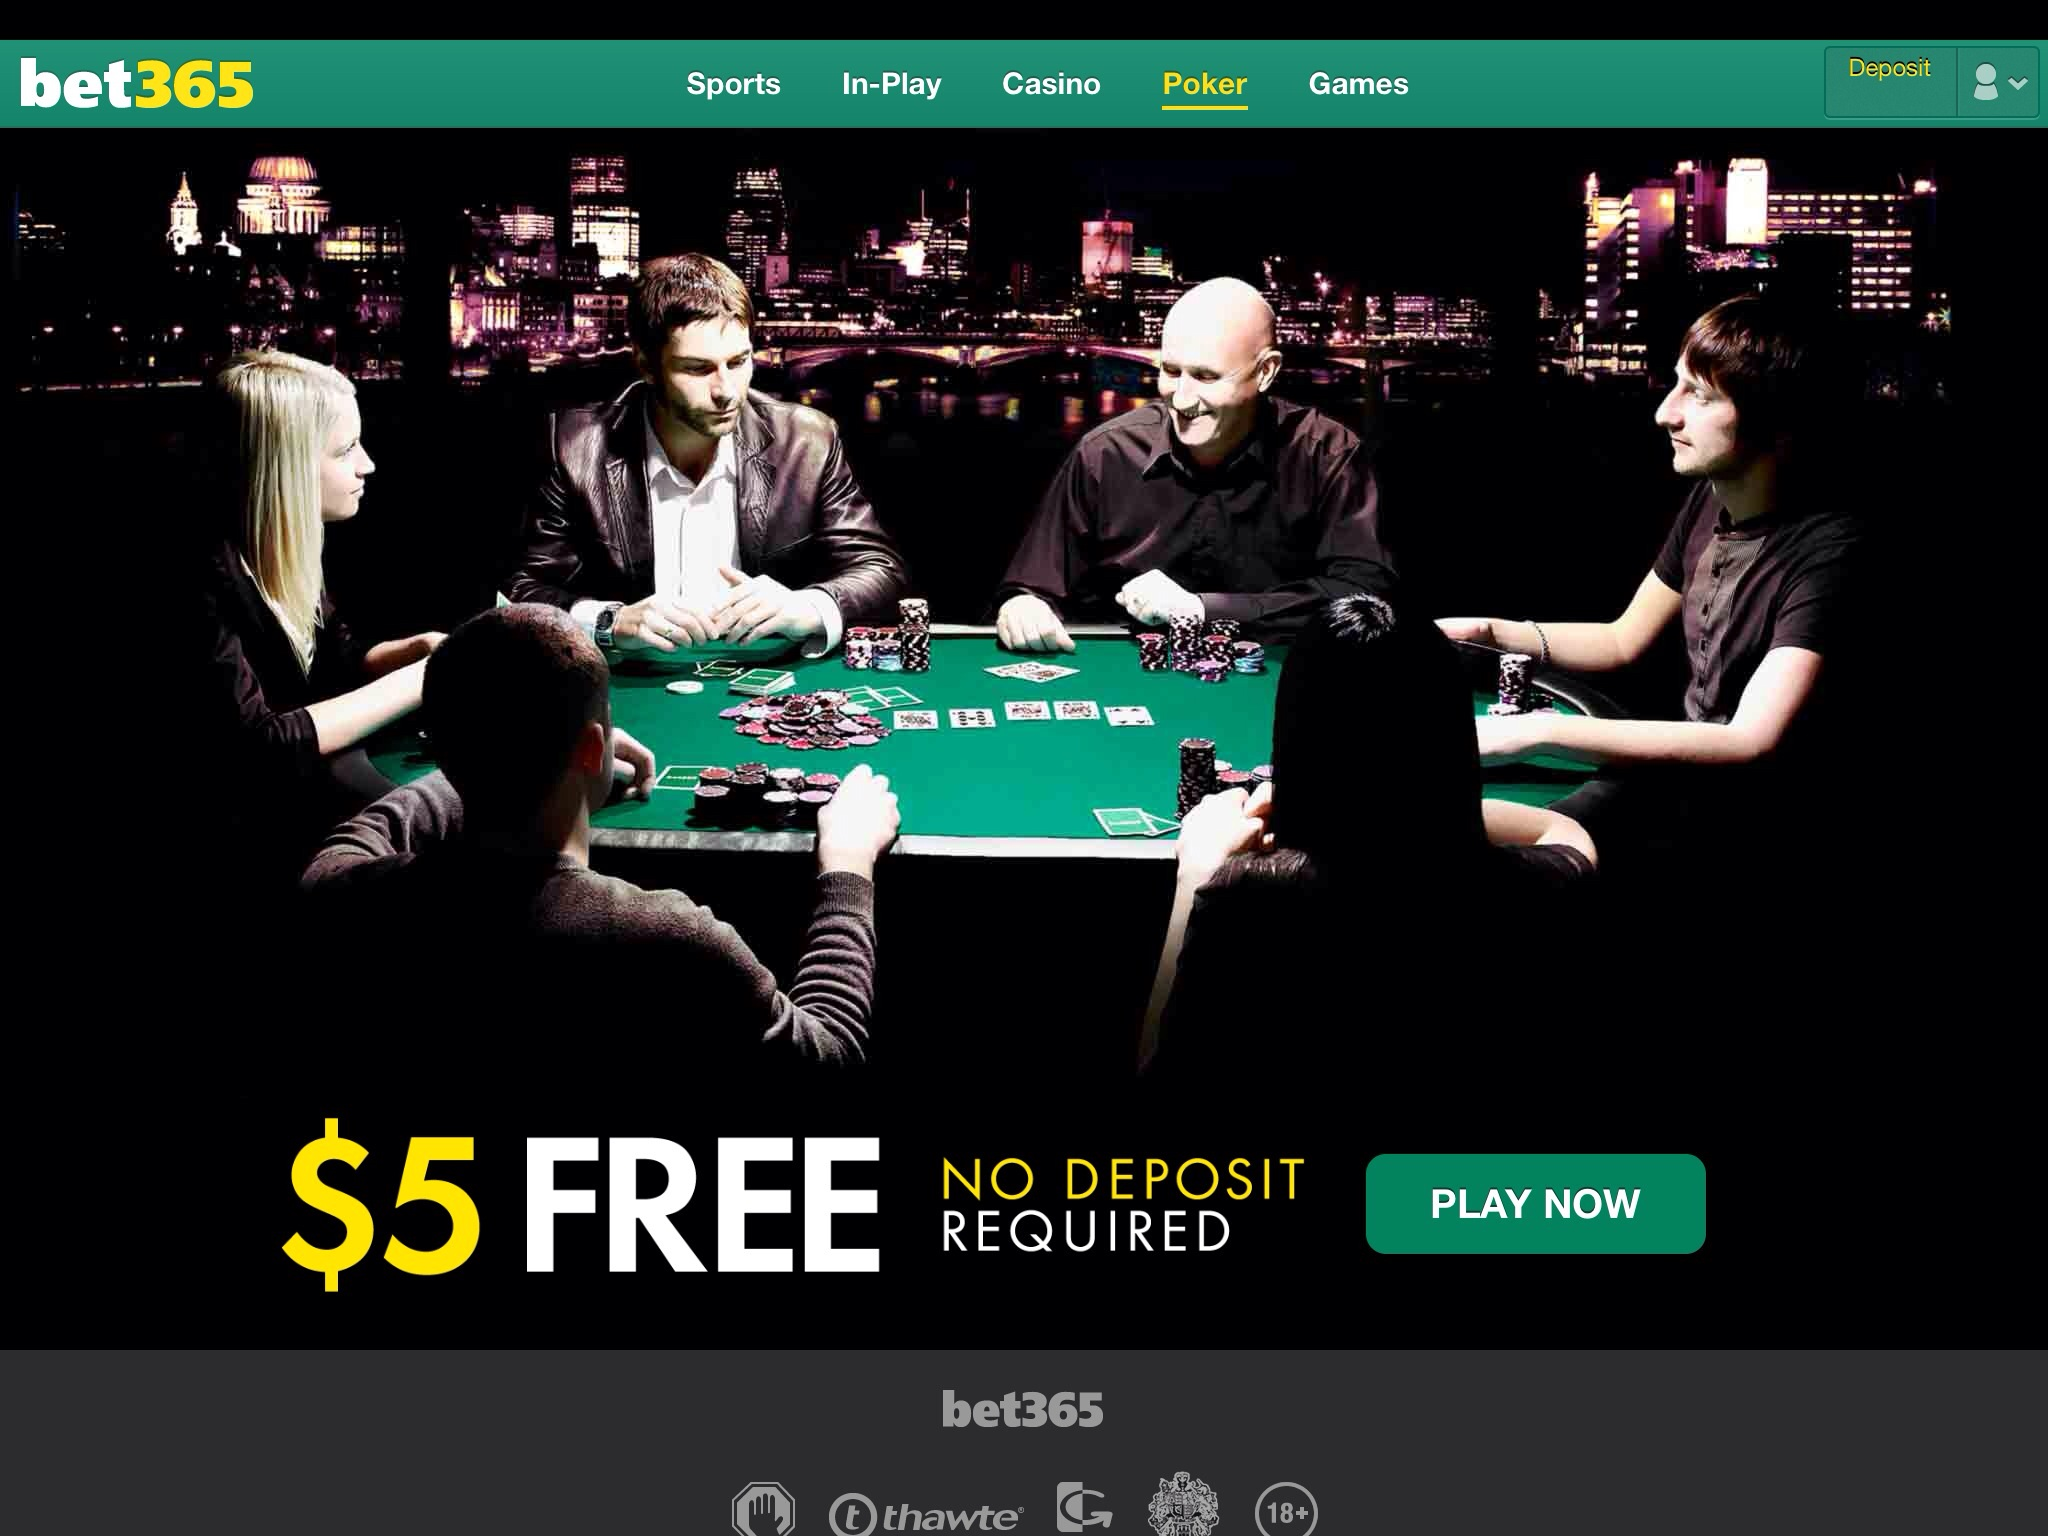 Bonus casino code deposit free no sing up sam/x27s town hotel and casino las vegas